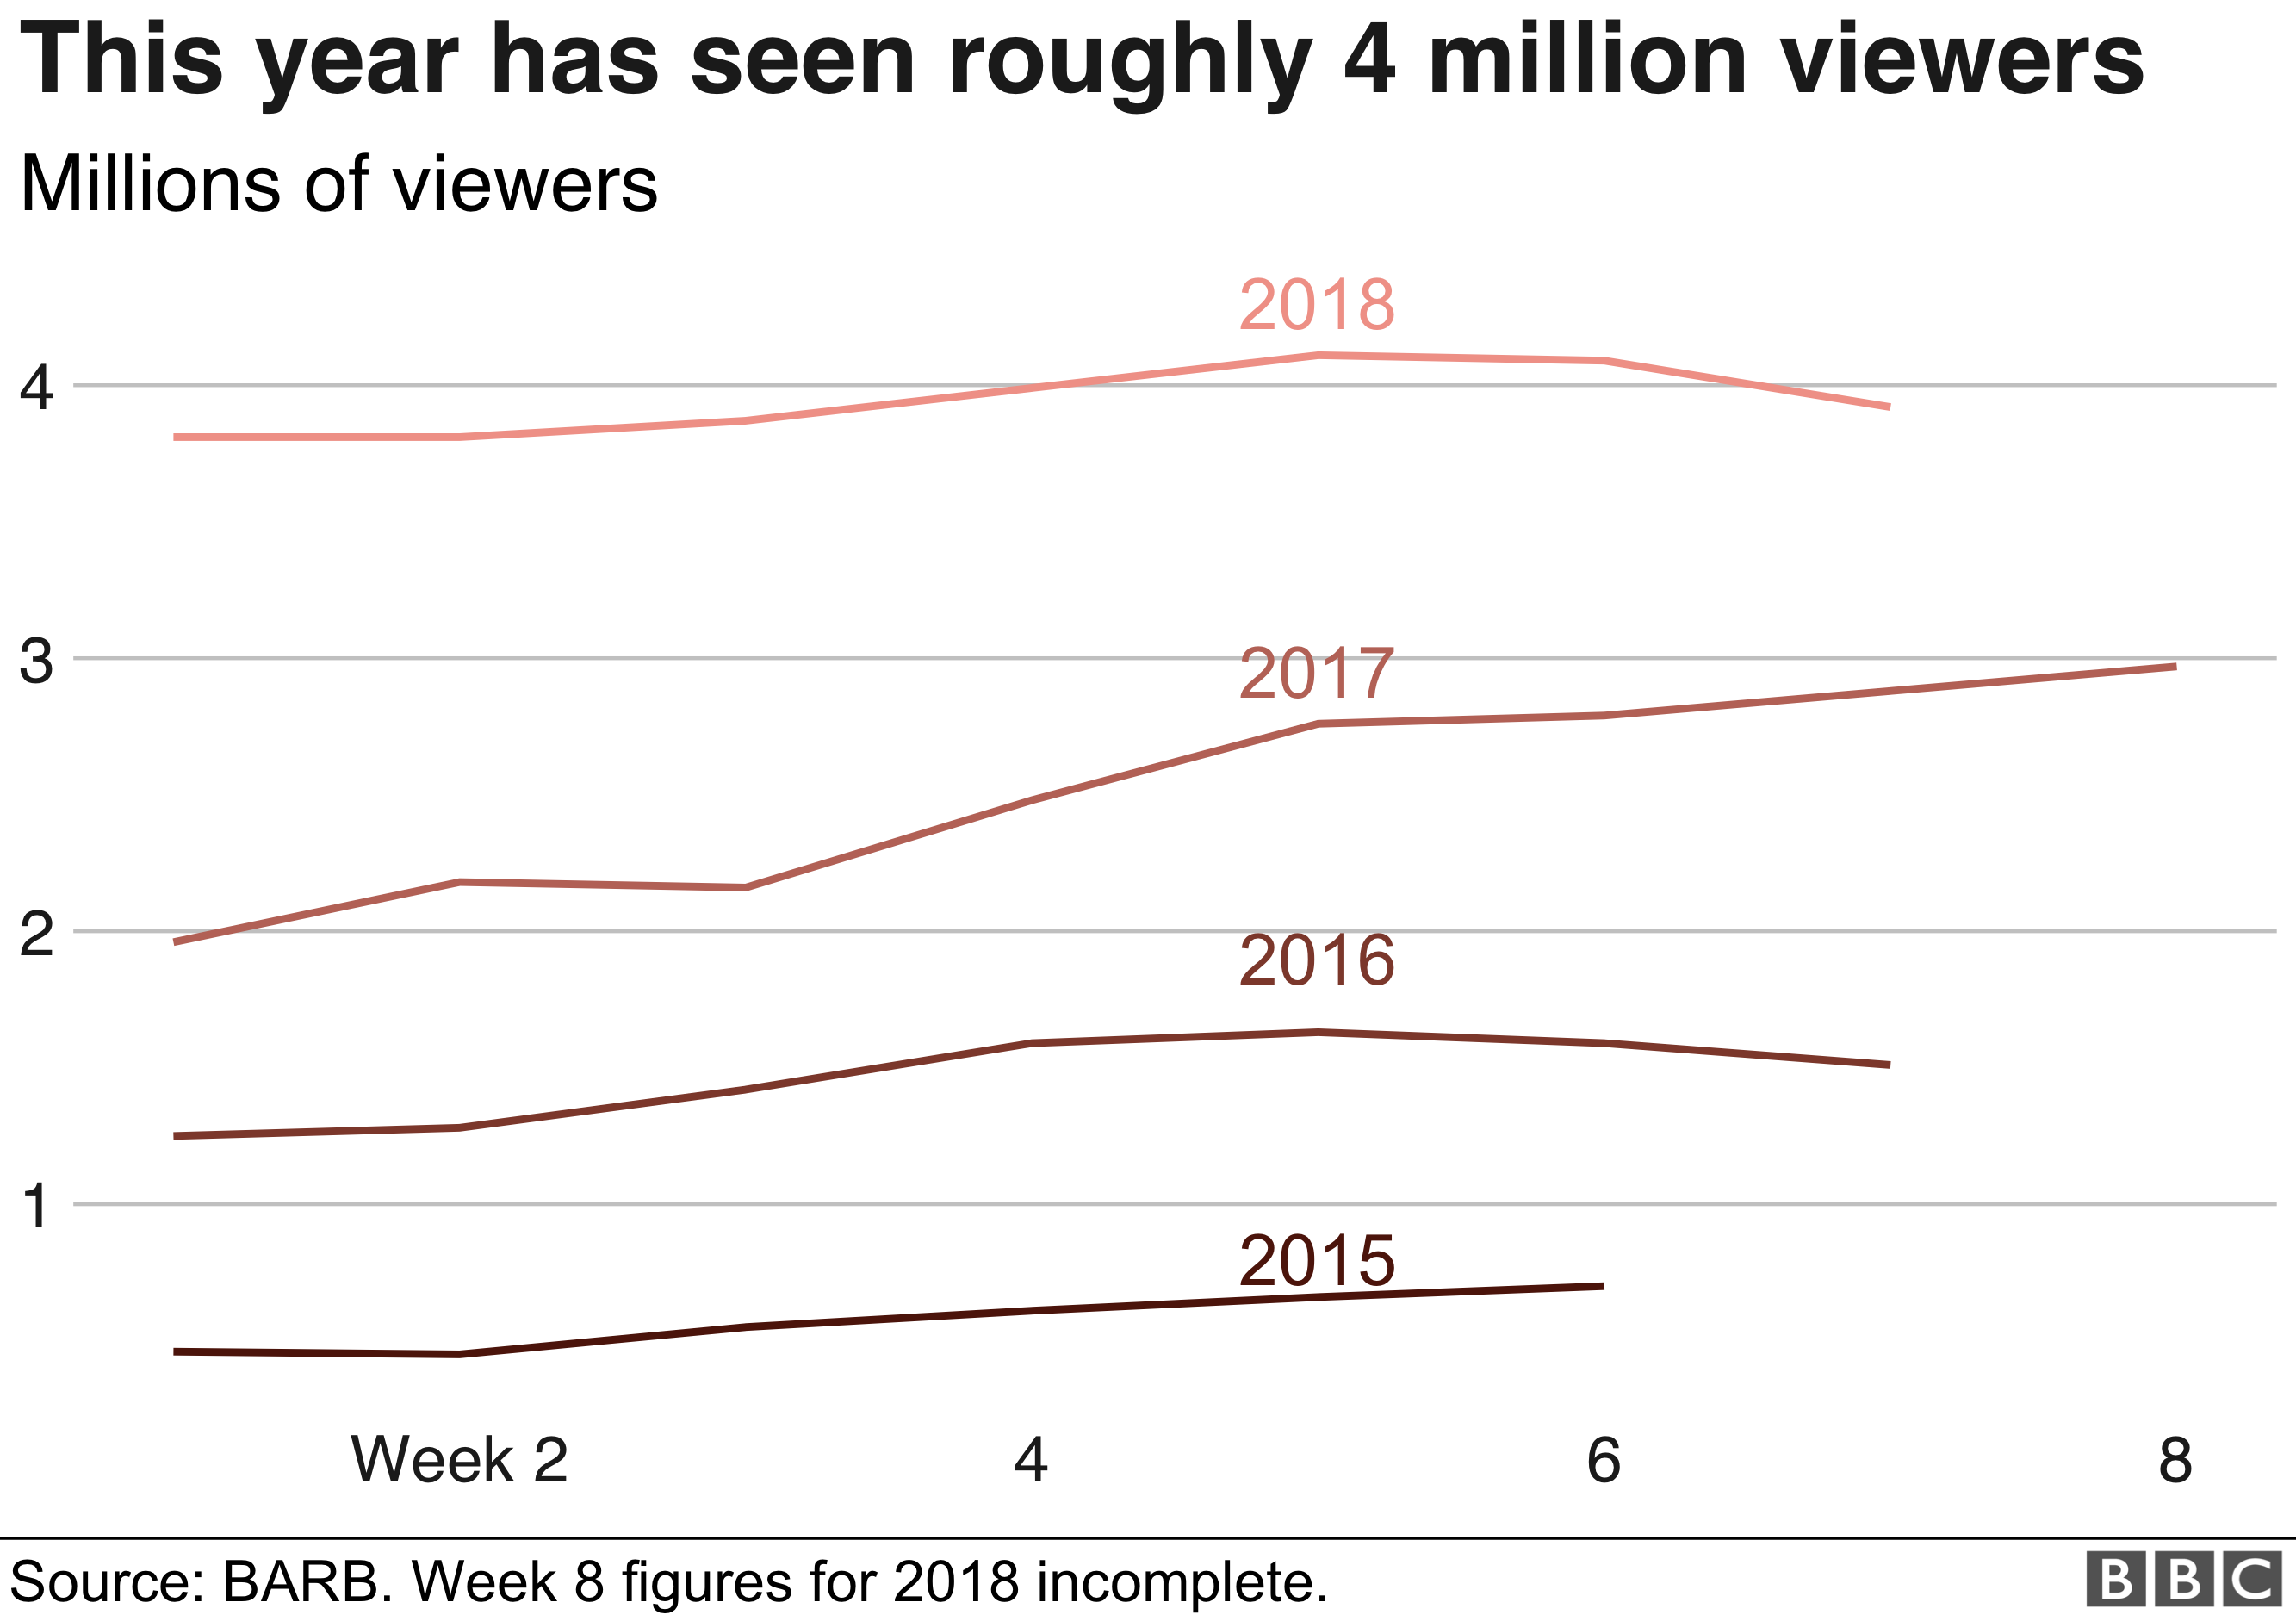 Chart showing viewing figures